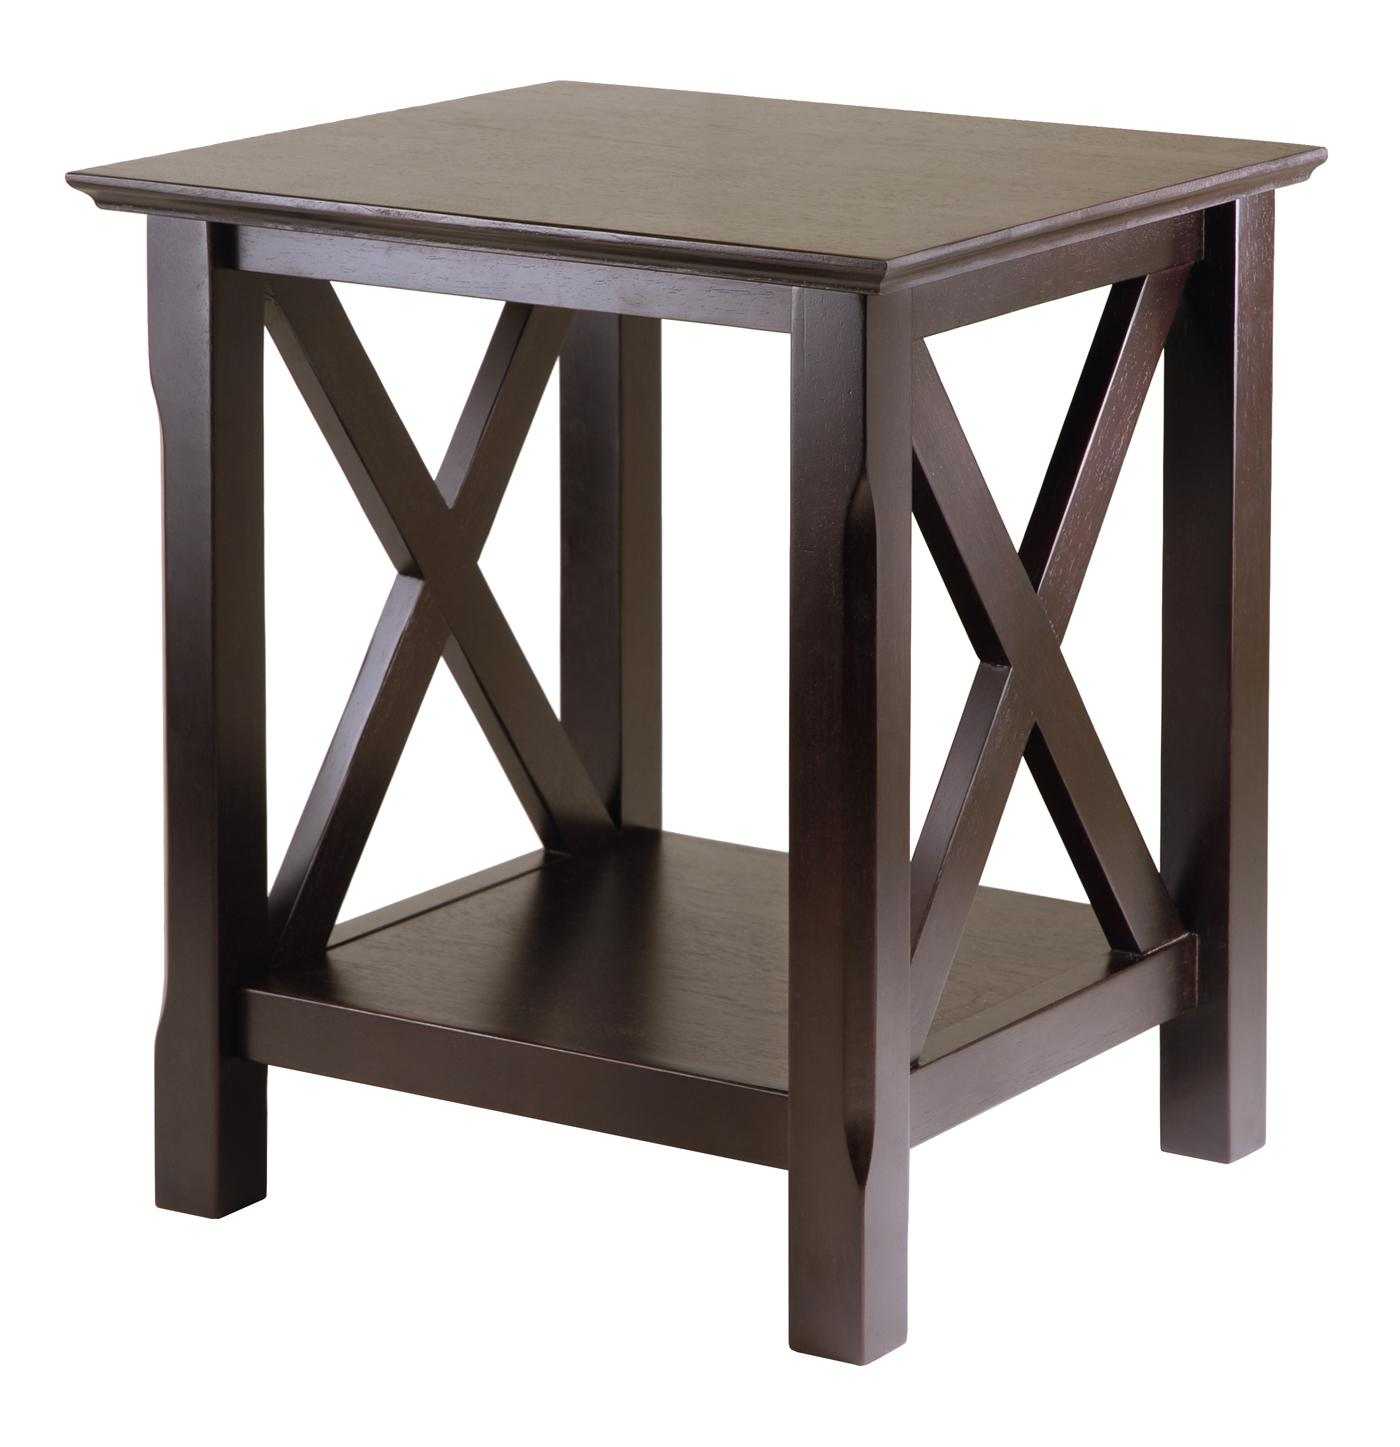 Xola End Table 81 85 Ojcommerce